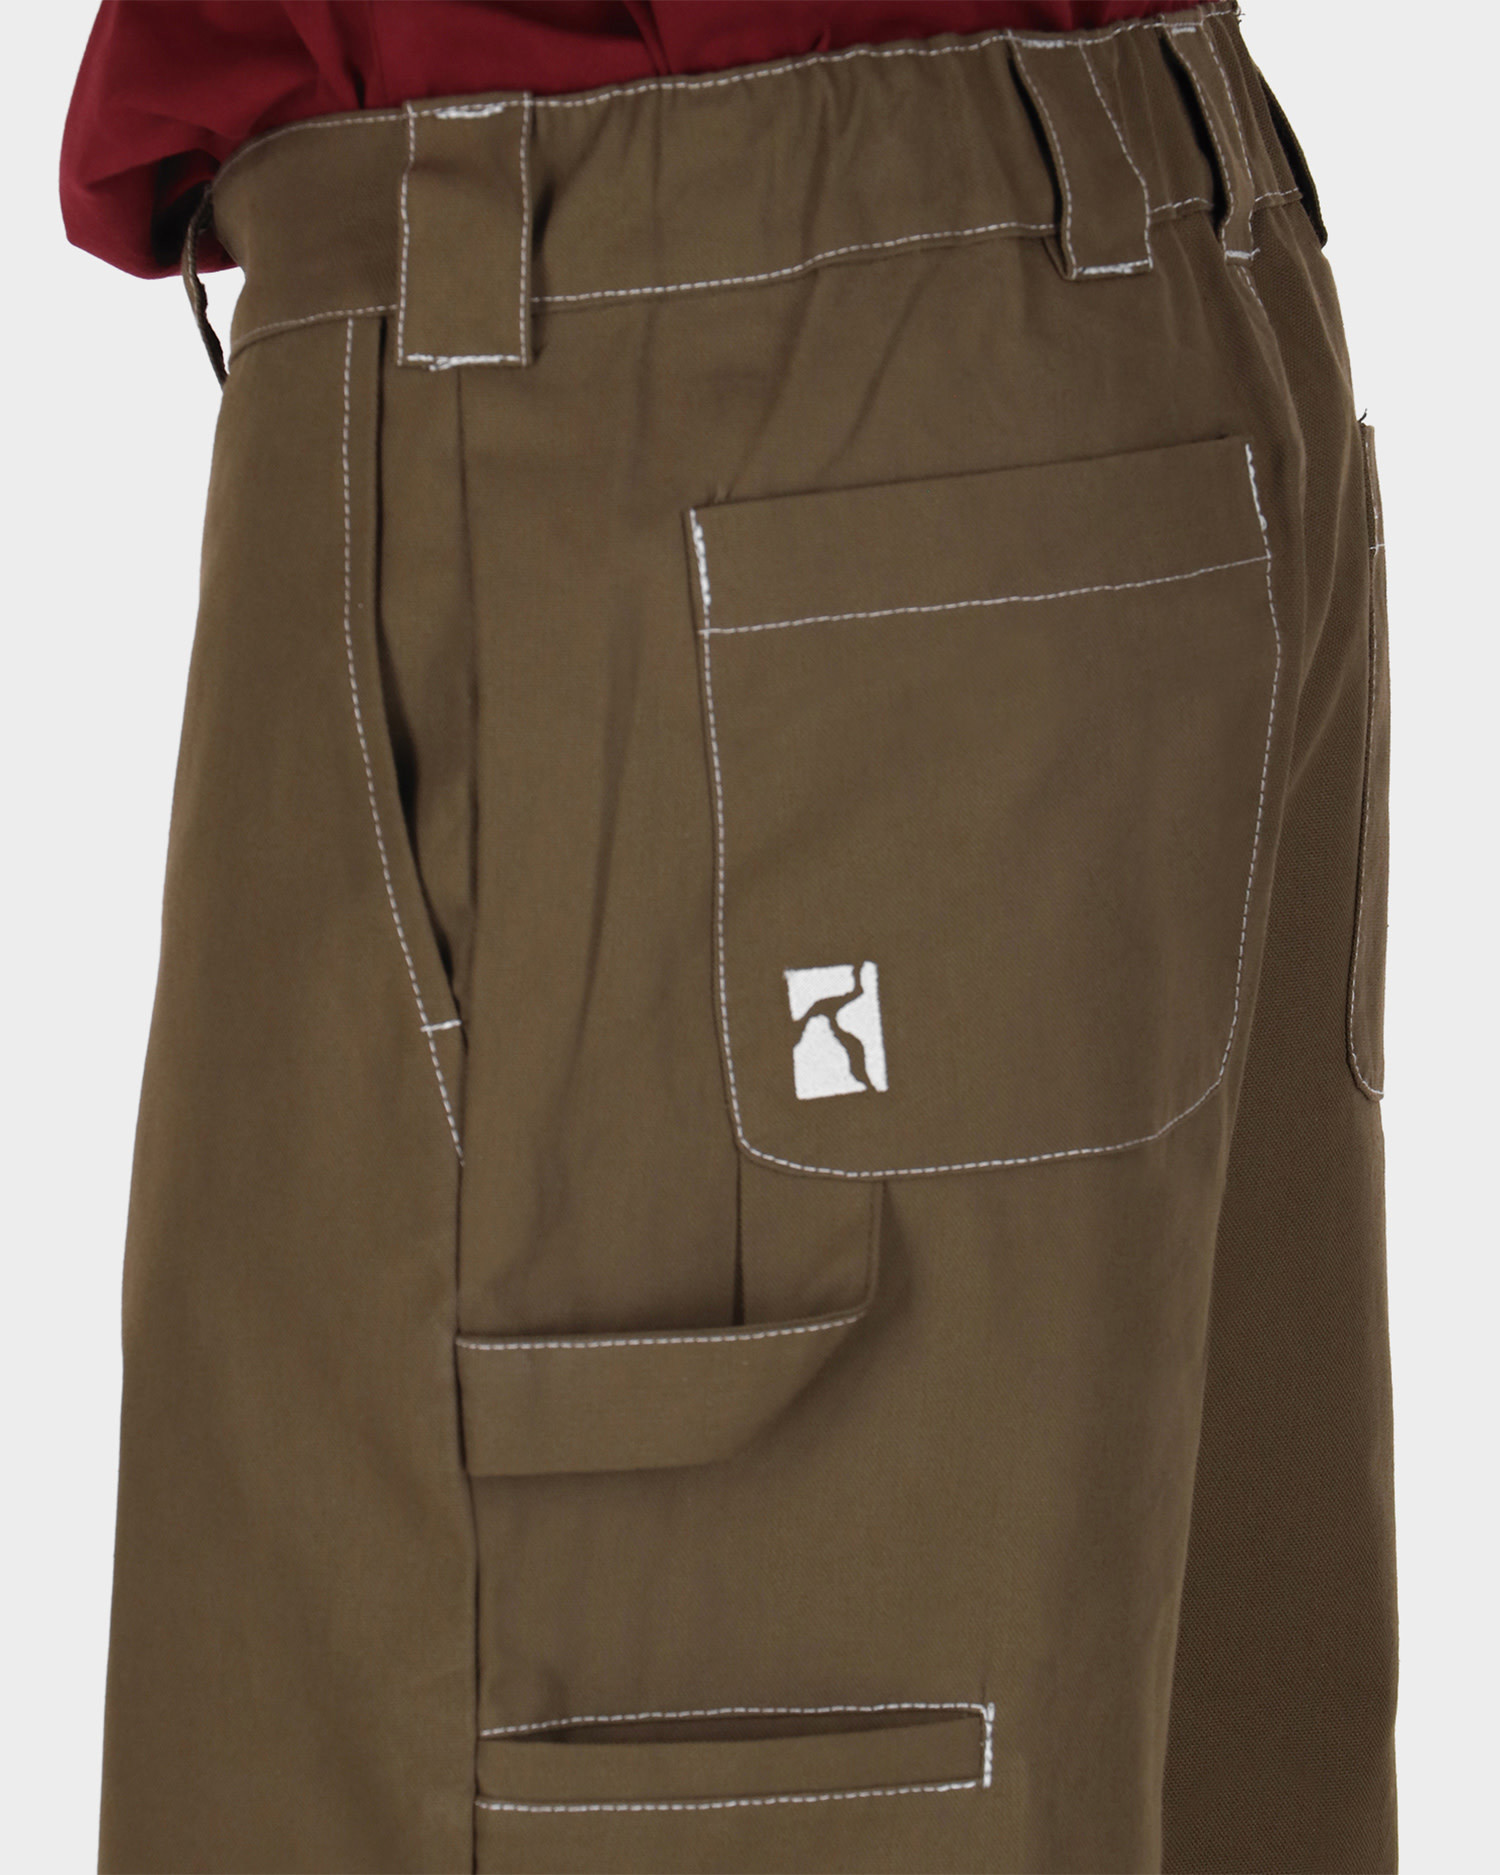 Poetic Collective Sculptor Pants Olive